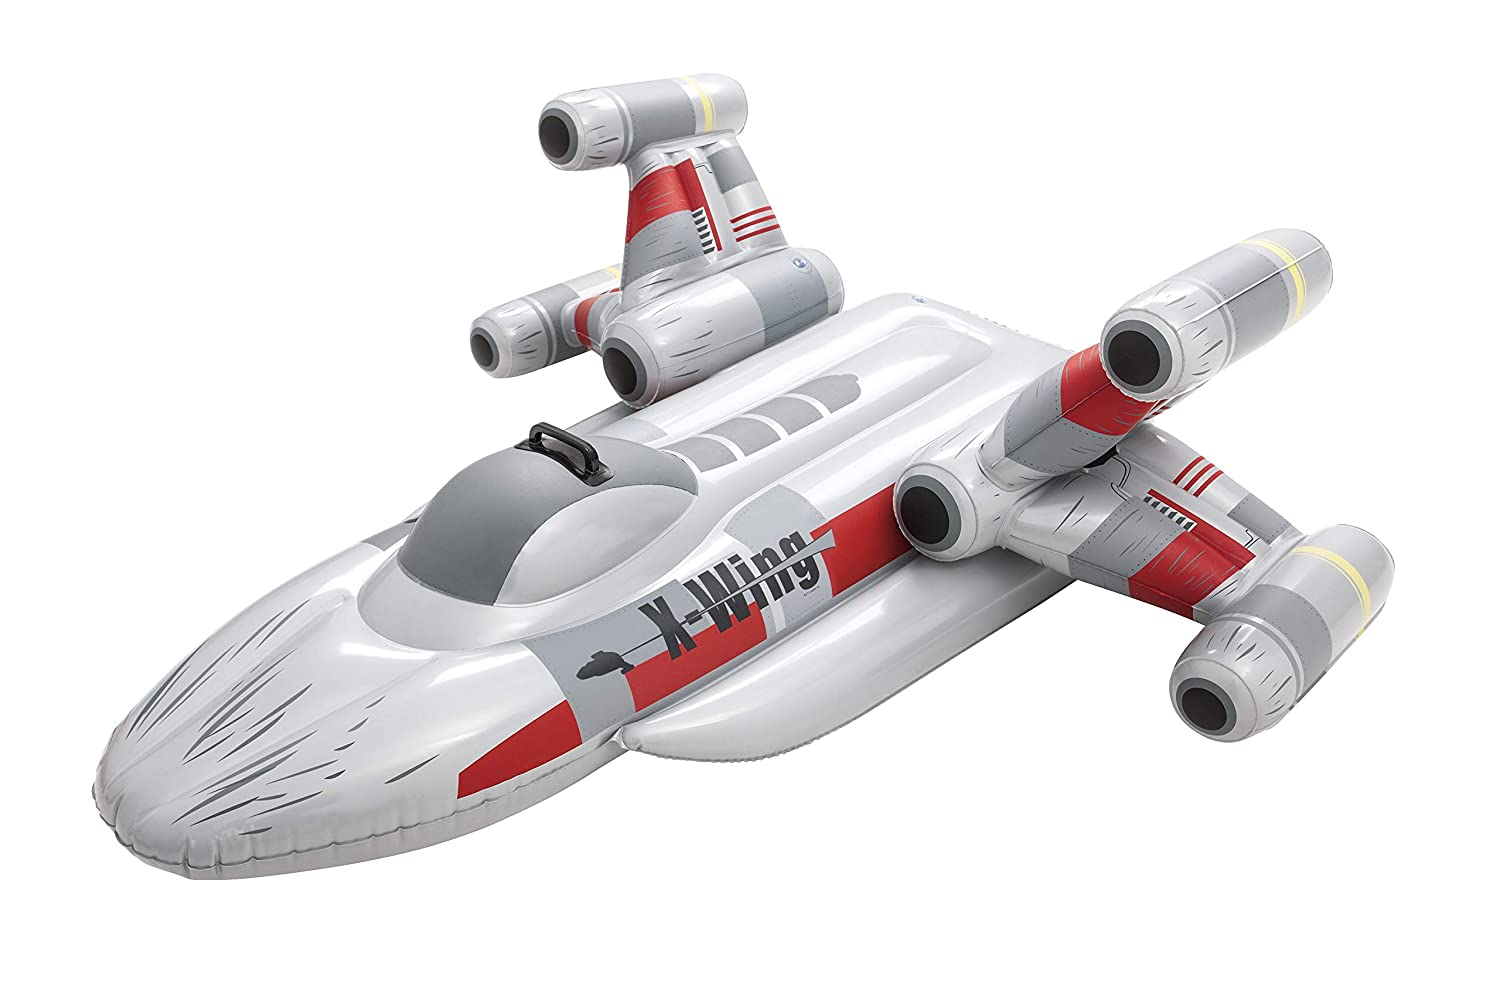 Nave Espacial Hinchable Bestway Star Wars X-Fighter Rider: Amazon ...